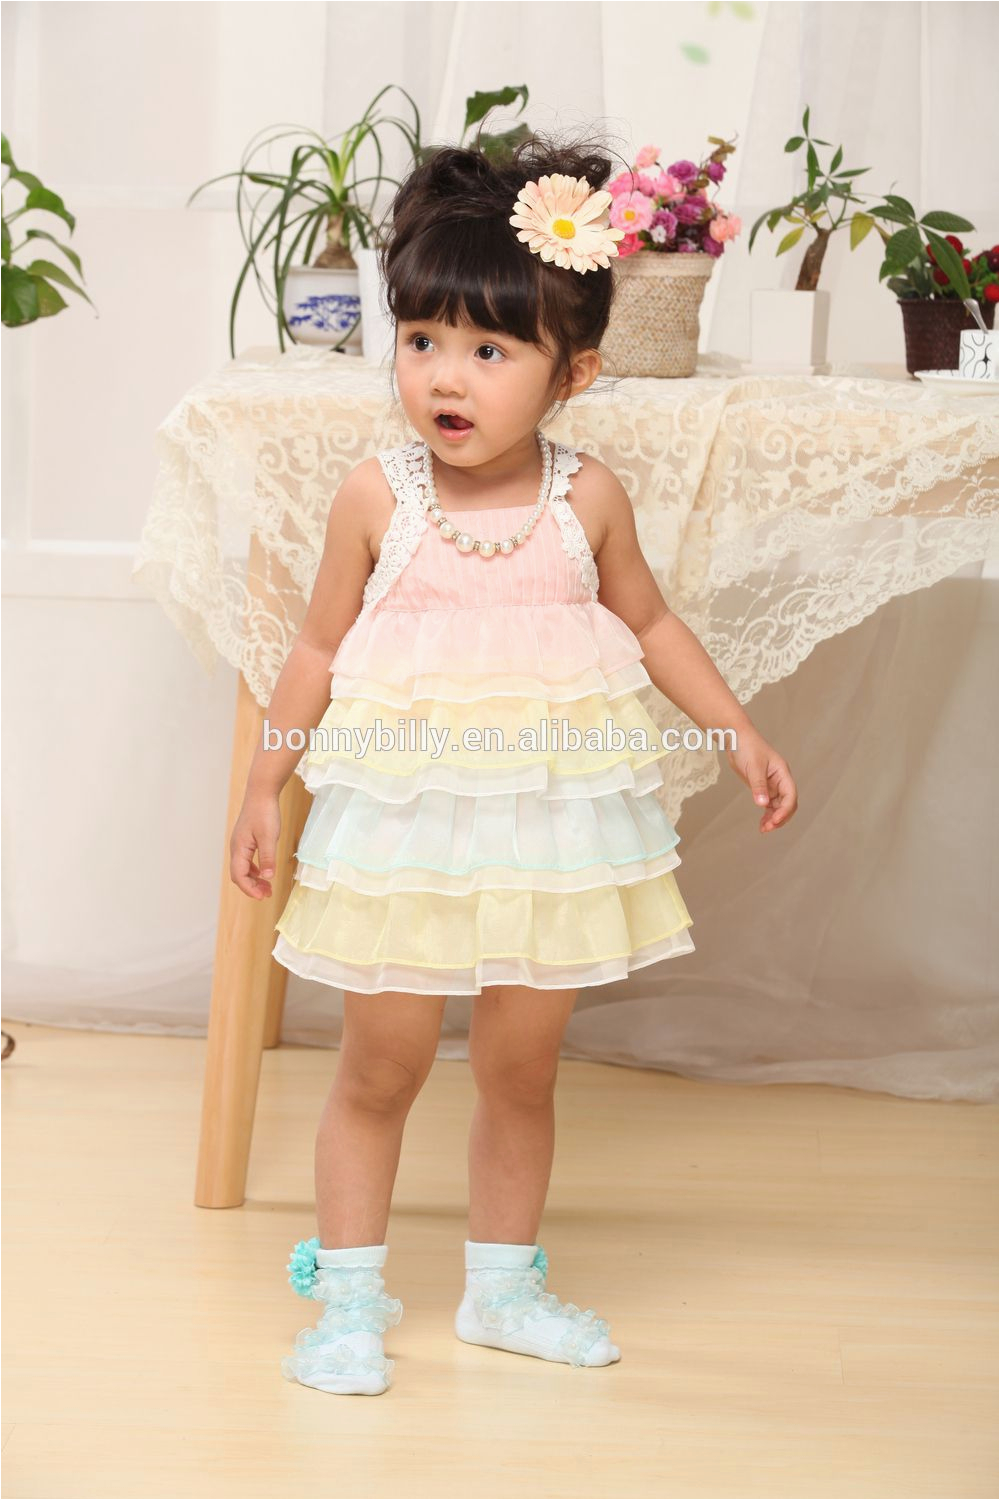 baby dress 1 year old 2017 fashion trends dresses ask